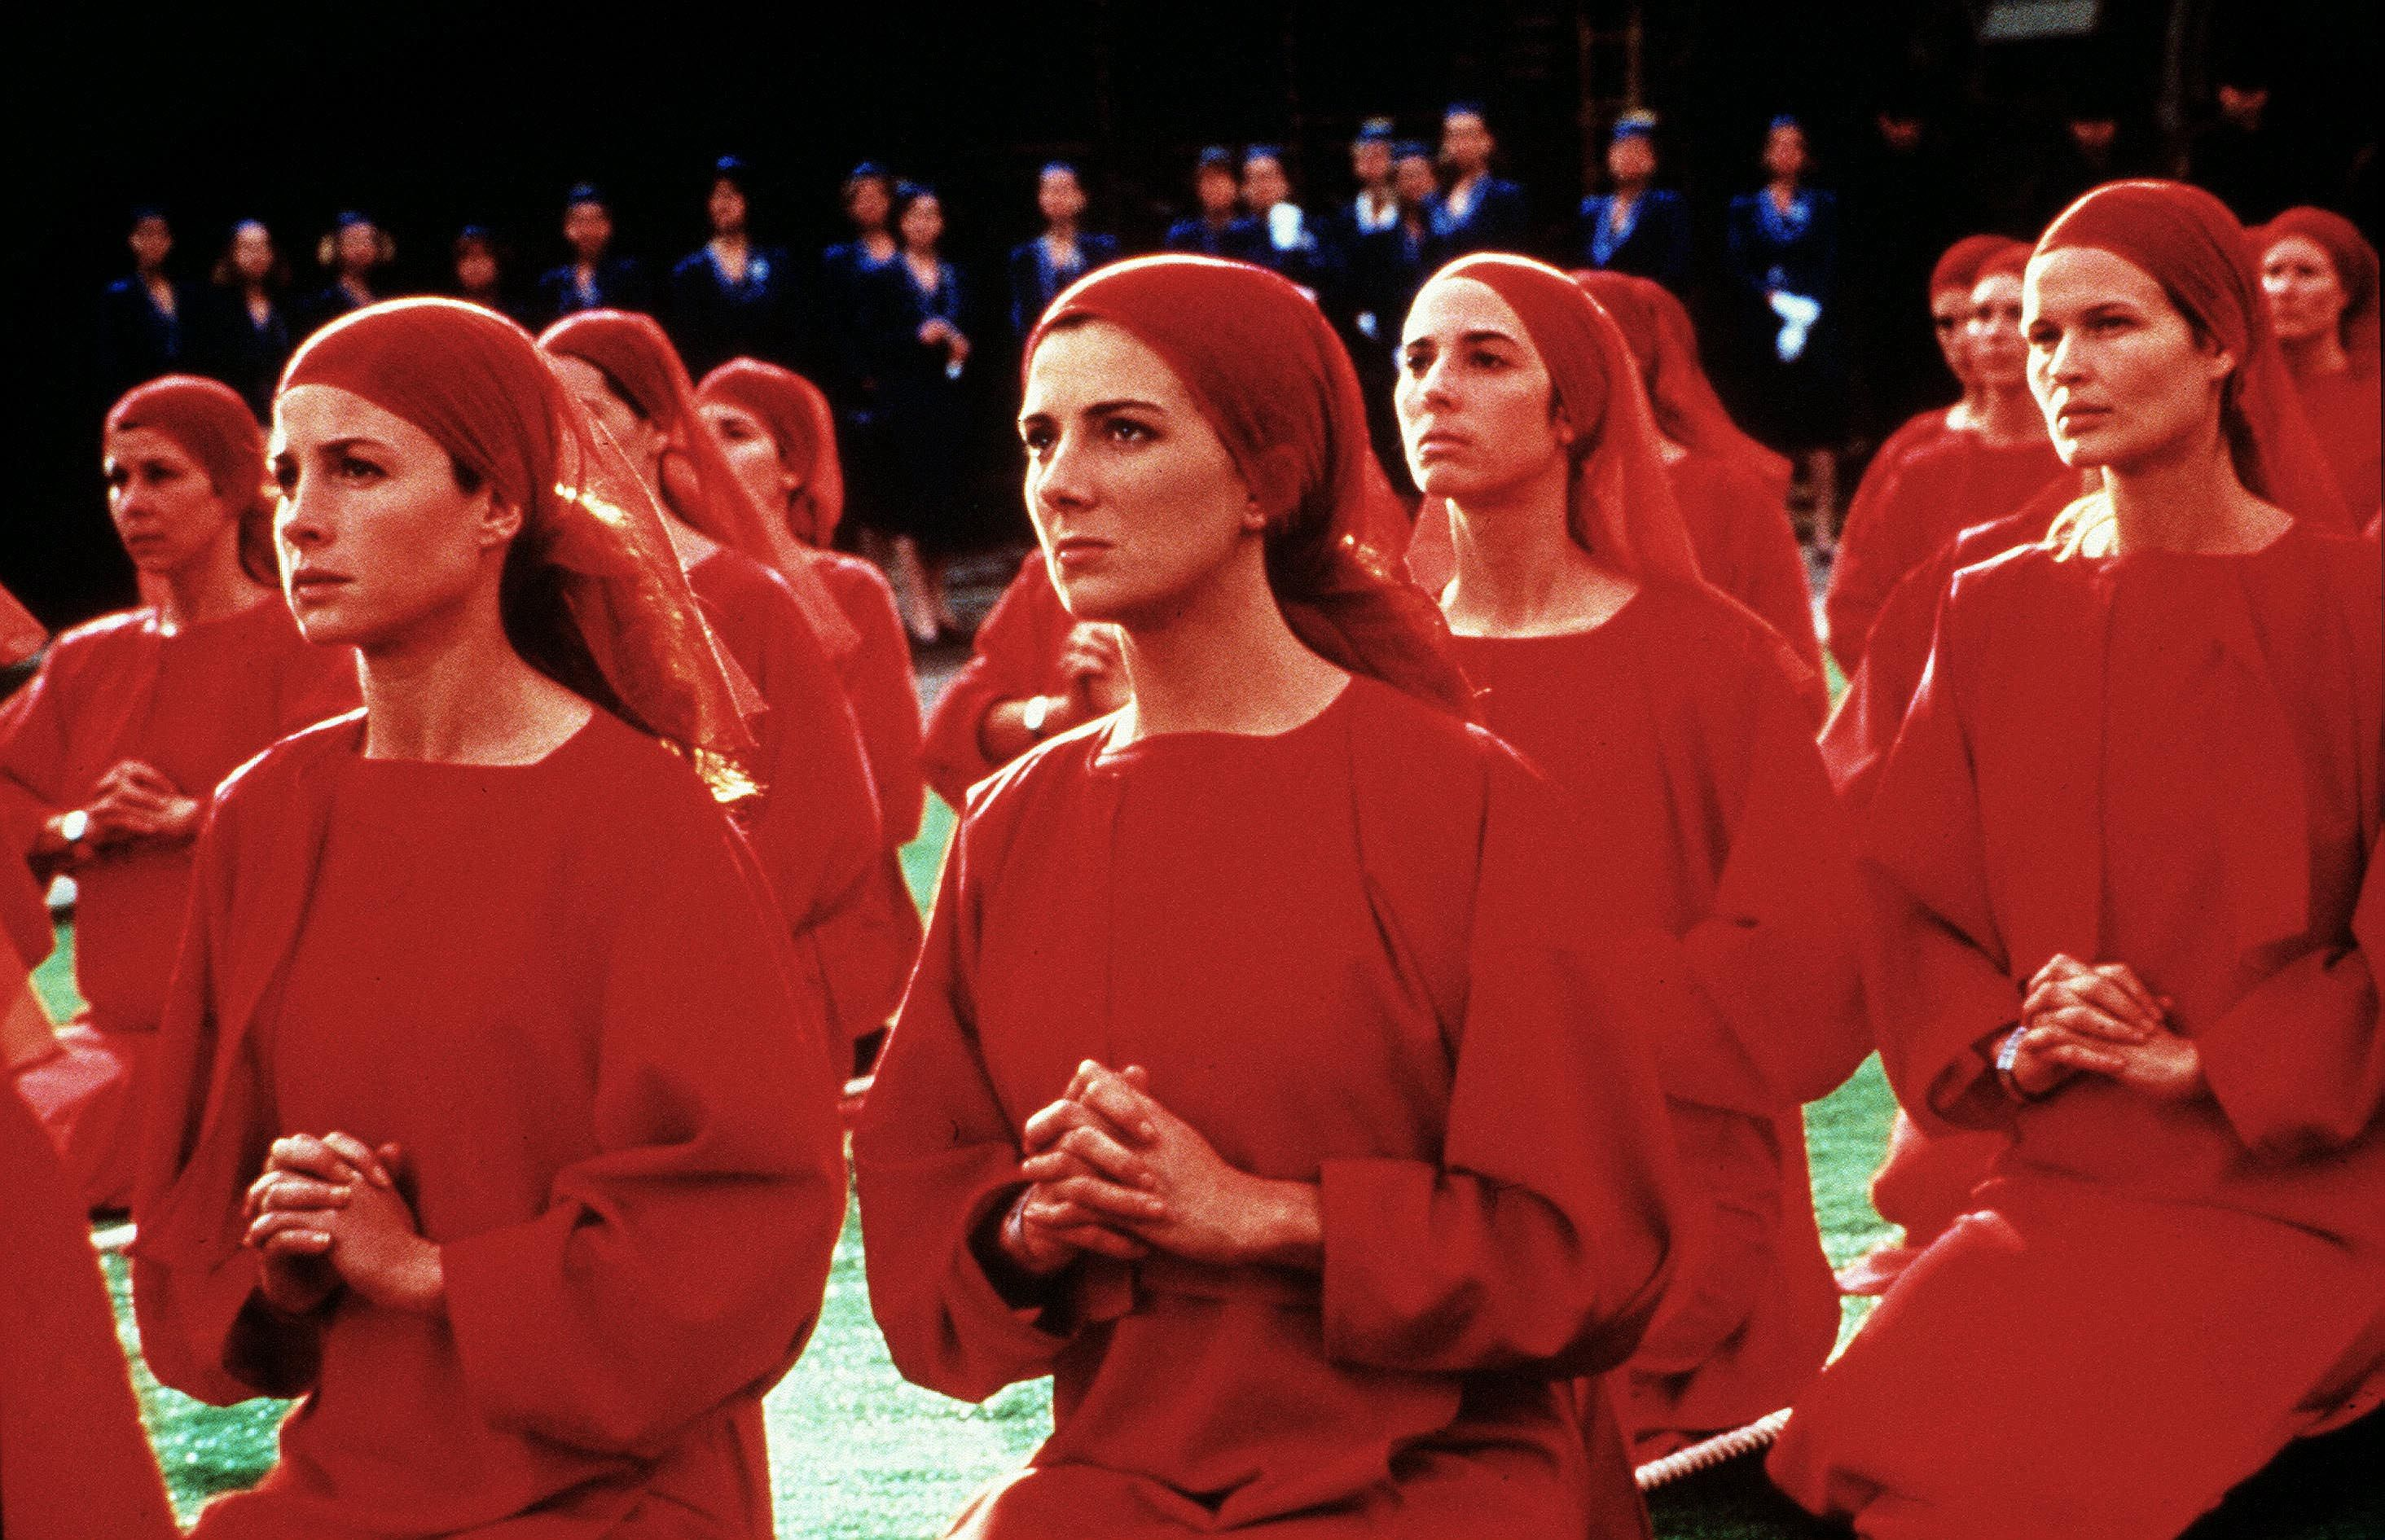 The Handmaids with Natasha Richardson in The Handmaid's Tale (1990)